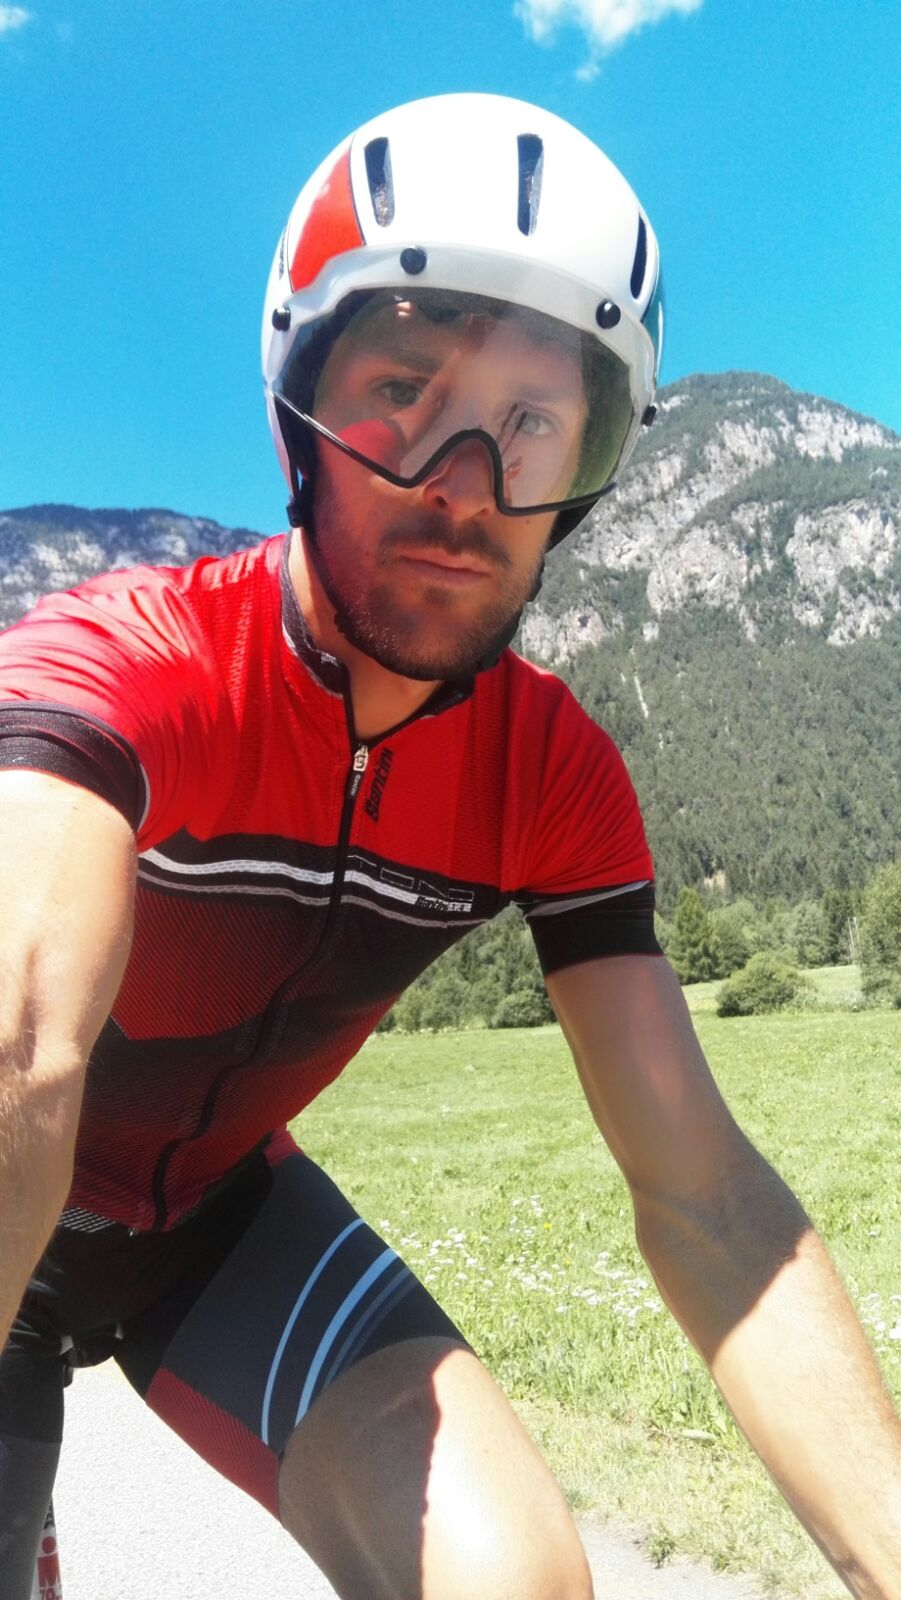 Cycling Clothing Kit Tono Santini The Best Summer Cycling Clothing